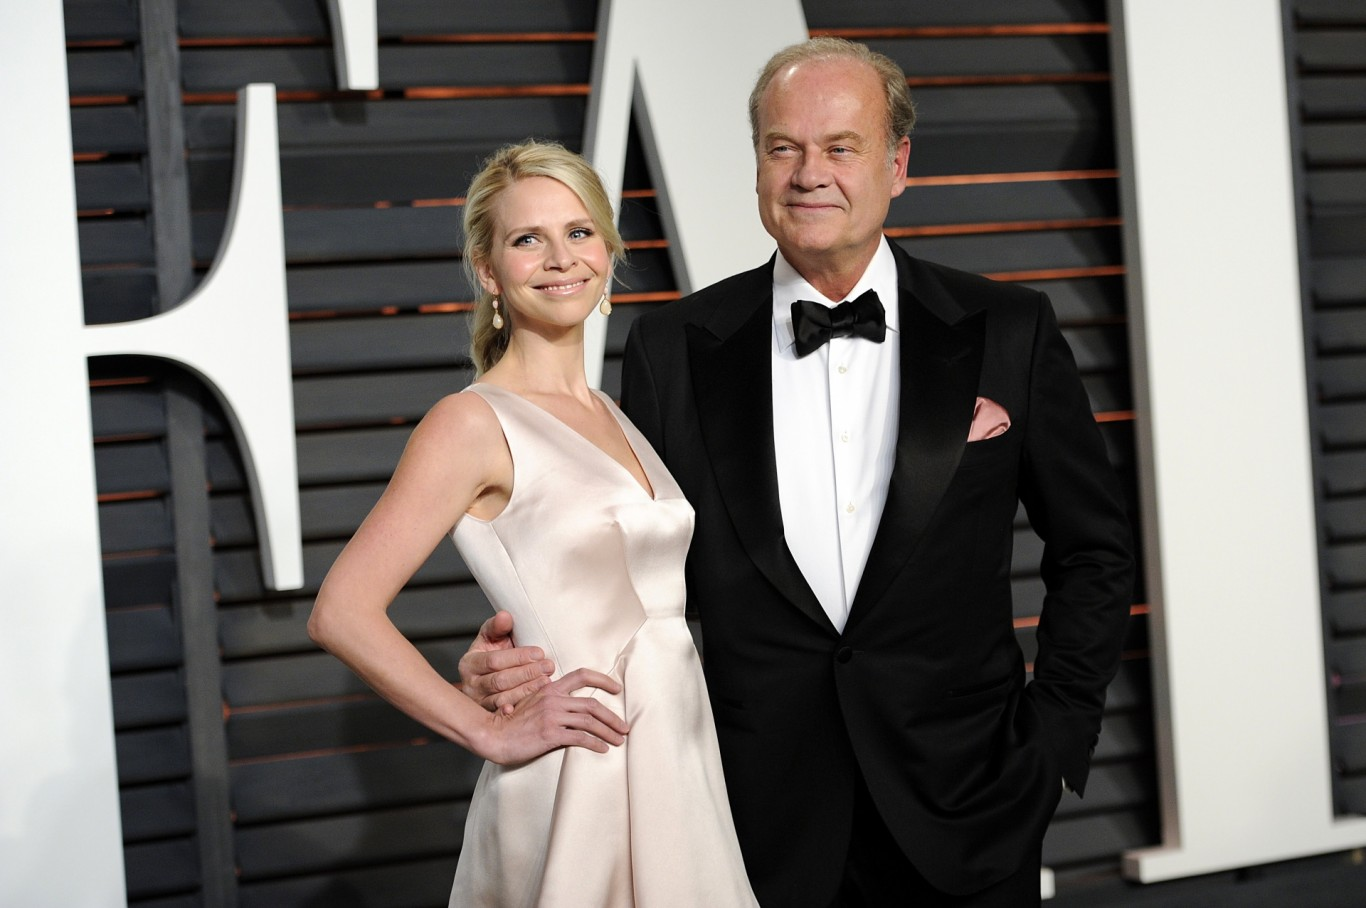 Kelsey Grammer and his wife Kayte Walsh